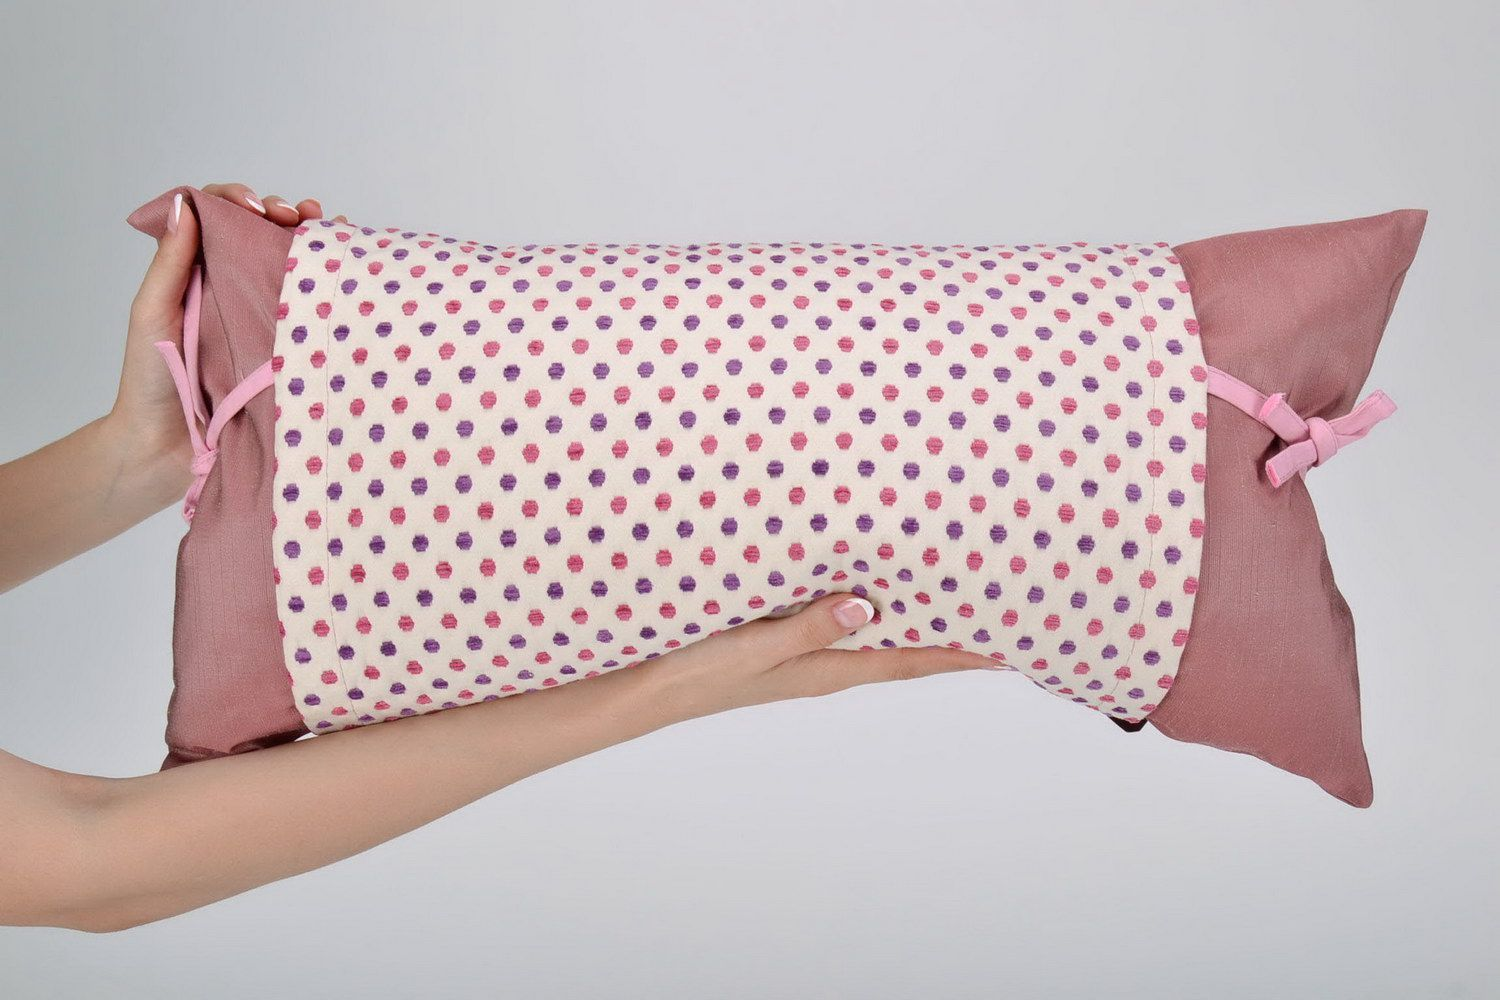 Handmade decorative pillow made of organza - MADEheart.com